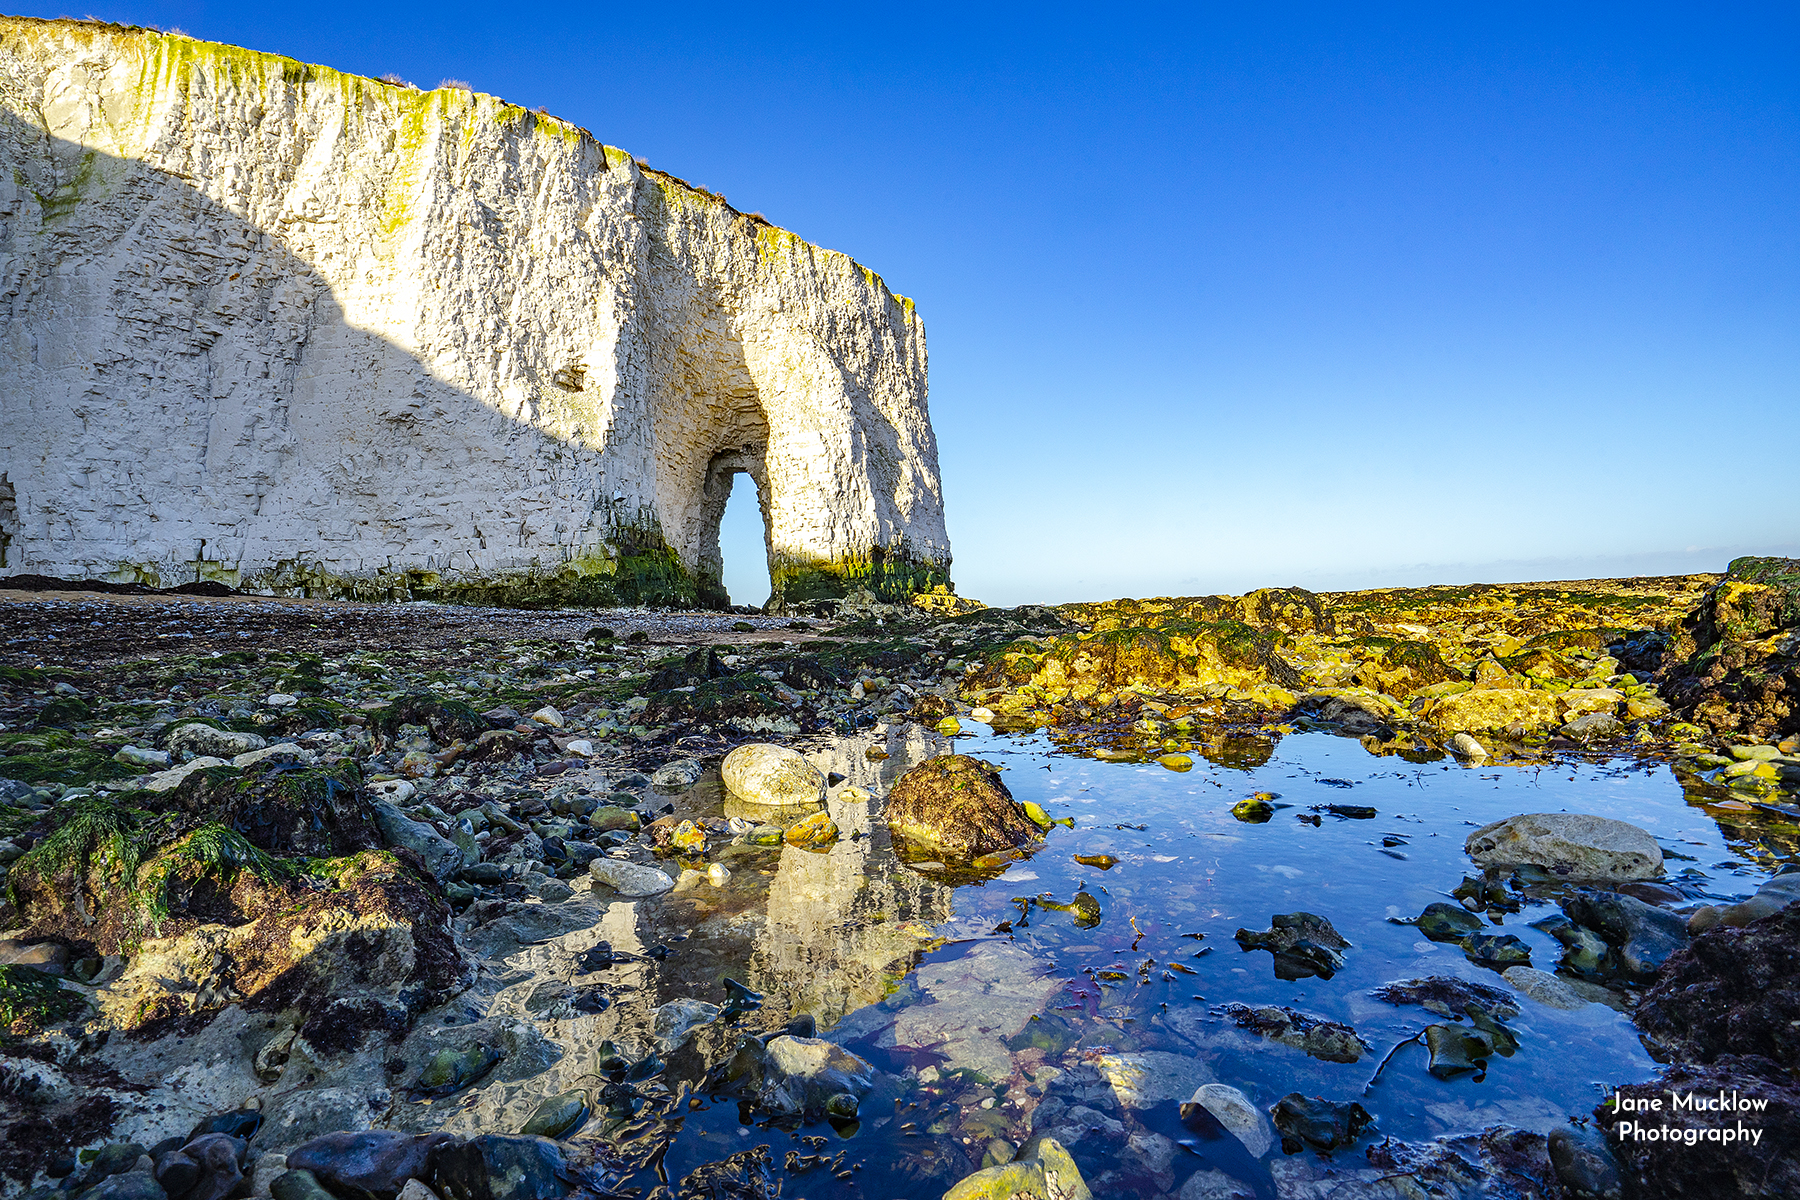 Photo of chalk archway at Botany Bay Kent by Jane Mucklow